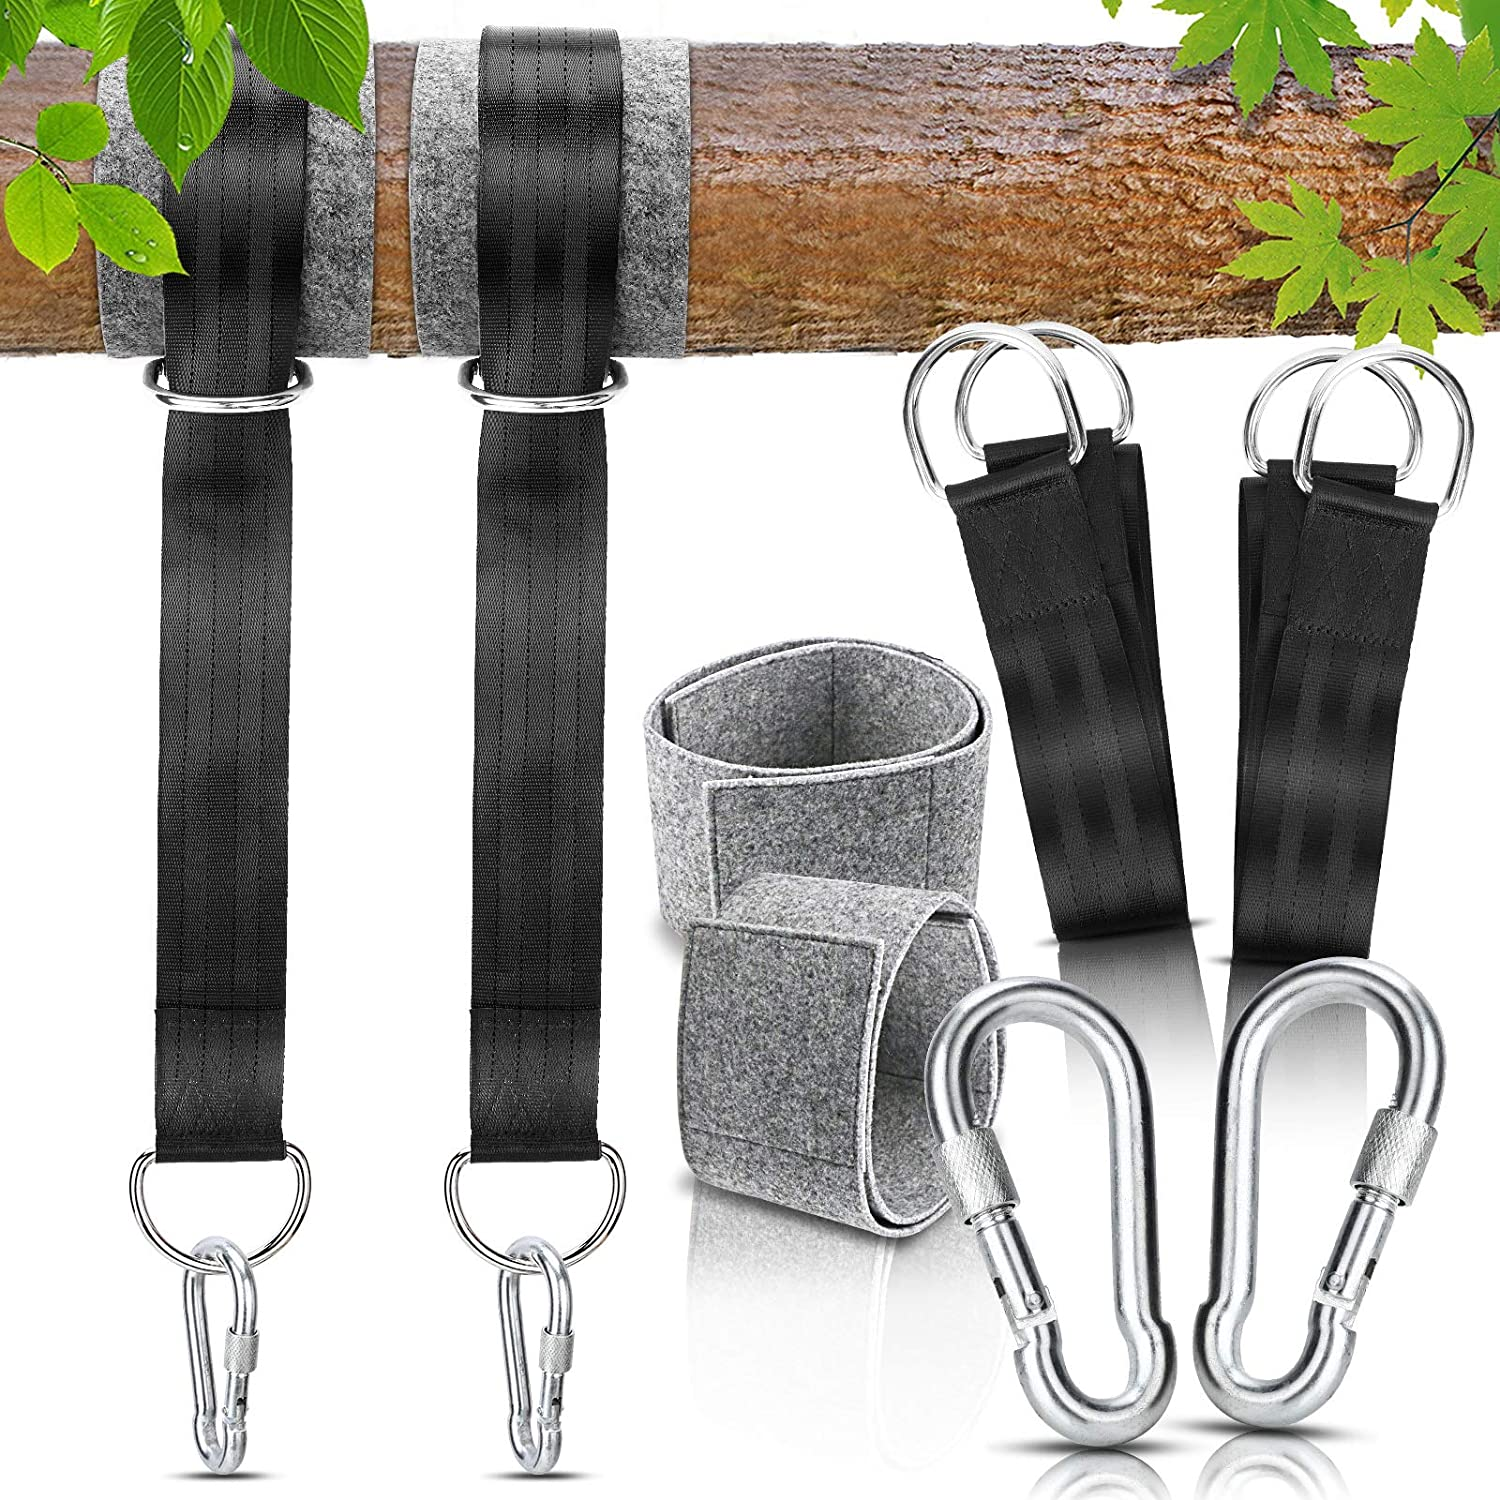 Details about  /5x150cm Outdoor Hammock Strap Children Swing Rope Lengthen Safety Device